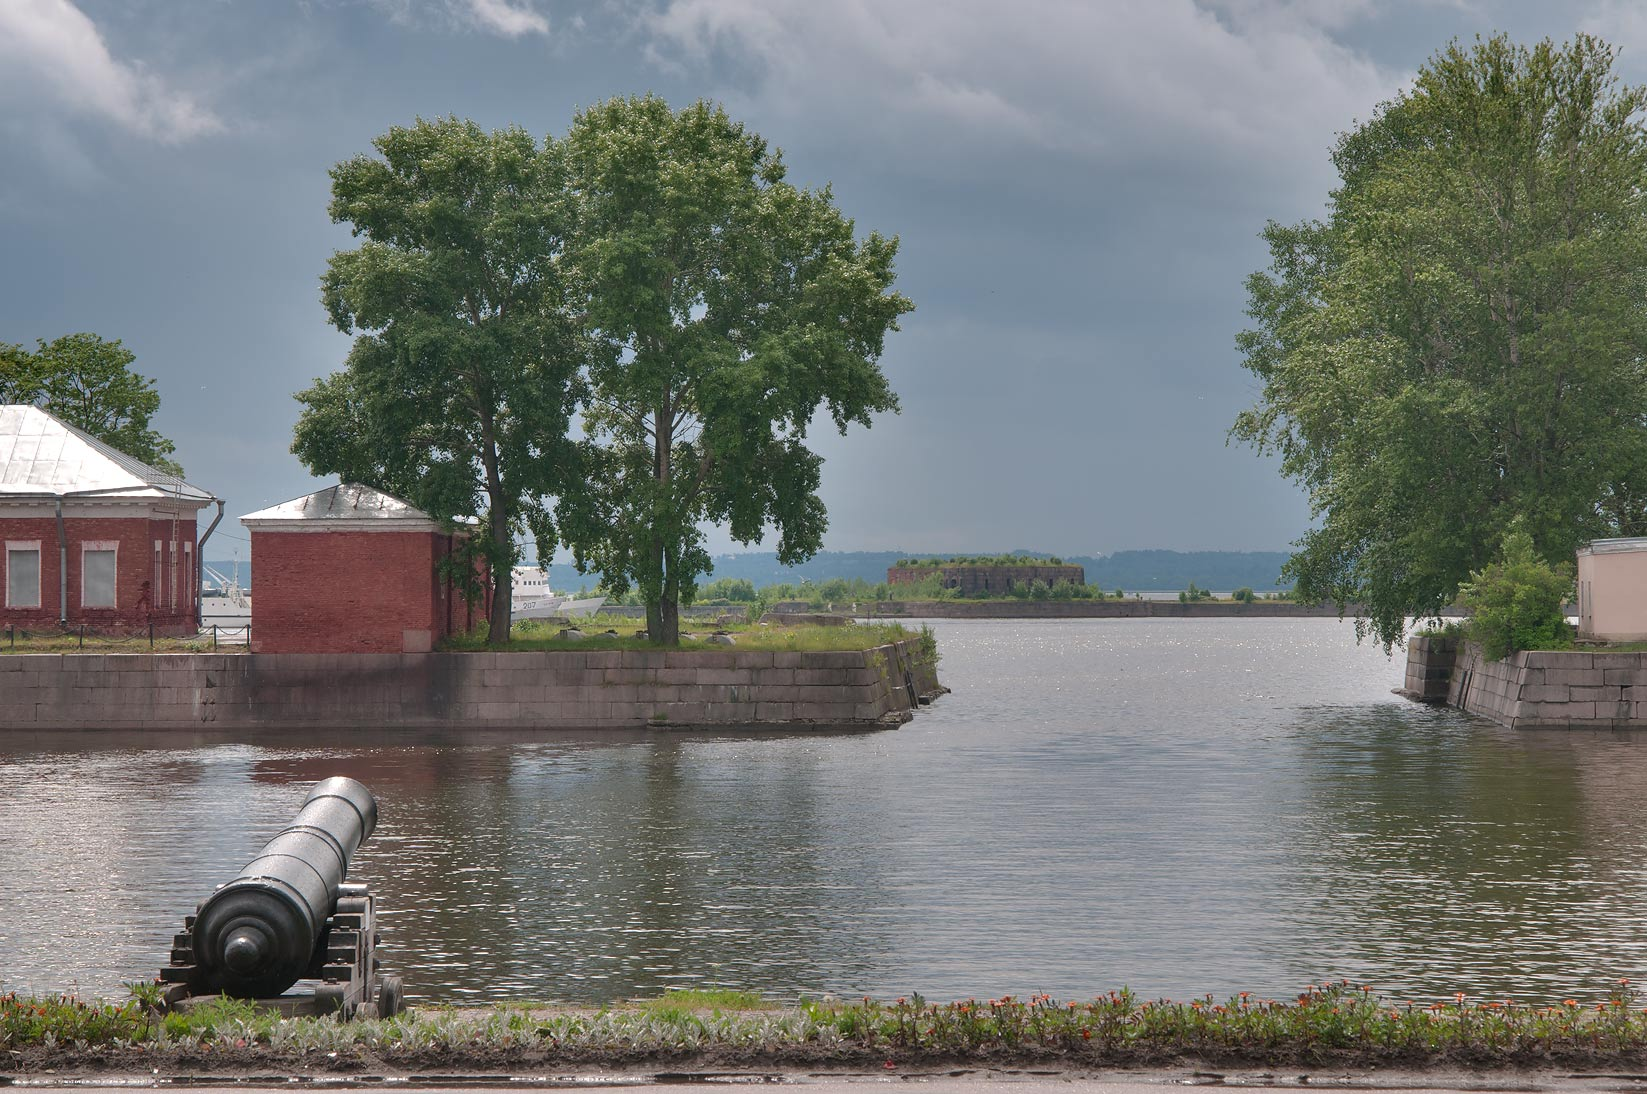 Old cannon and Italyansky Prud (Italian Pond...in Kronstadt. St.Petersburg, Russia